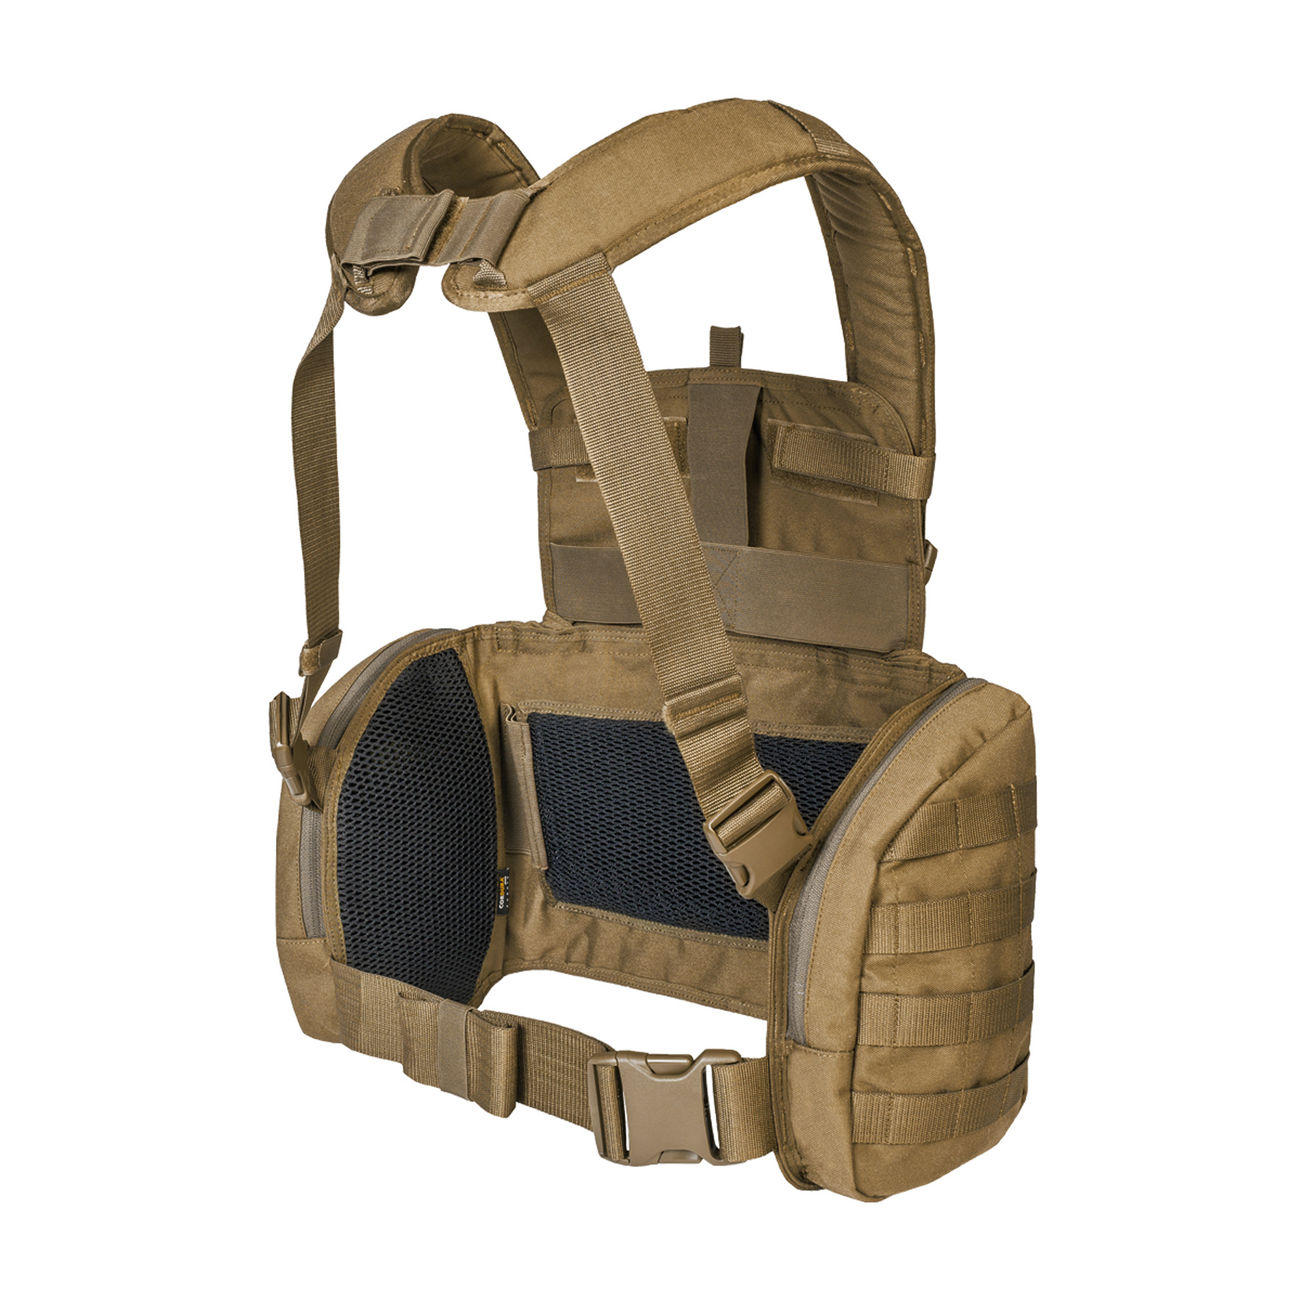 TT Chest Rig MK II M4 coyote brown 2